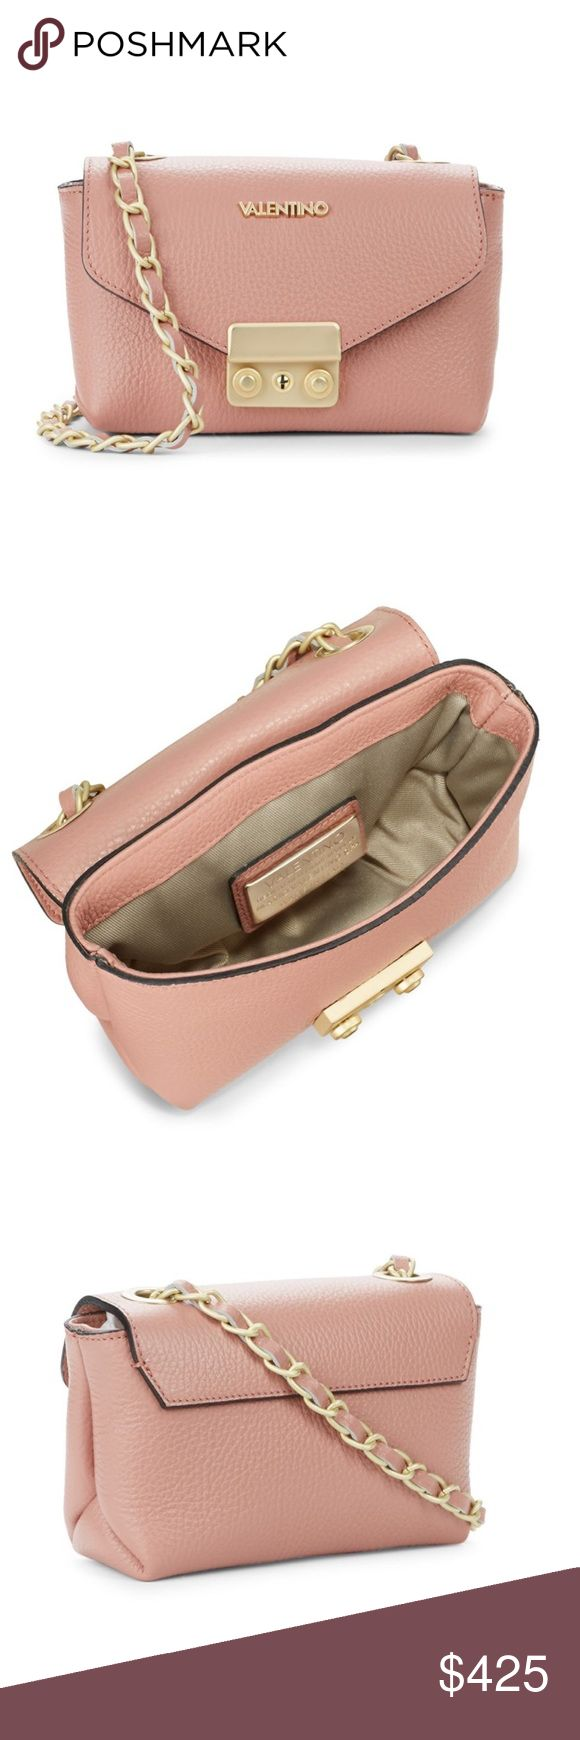 Valentino Pink Leather & Gold Chain Crossbody Bag Valentino Pink Leather & Gold Chain Crossbody Bag • Gorgeous Genuine Leather • Gold tone Hardware • Details and measurements in the last photo. Gorgeous bag! Brand new with tags & authenticity card. Mario Valentino Bags Crossbody Bags